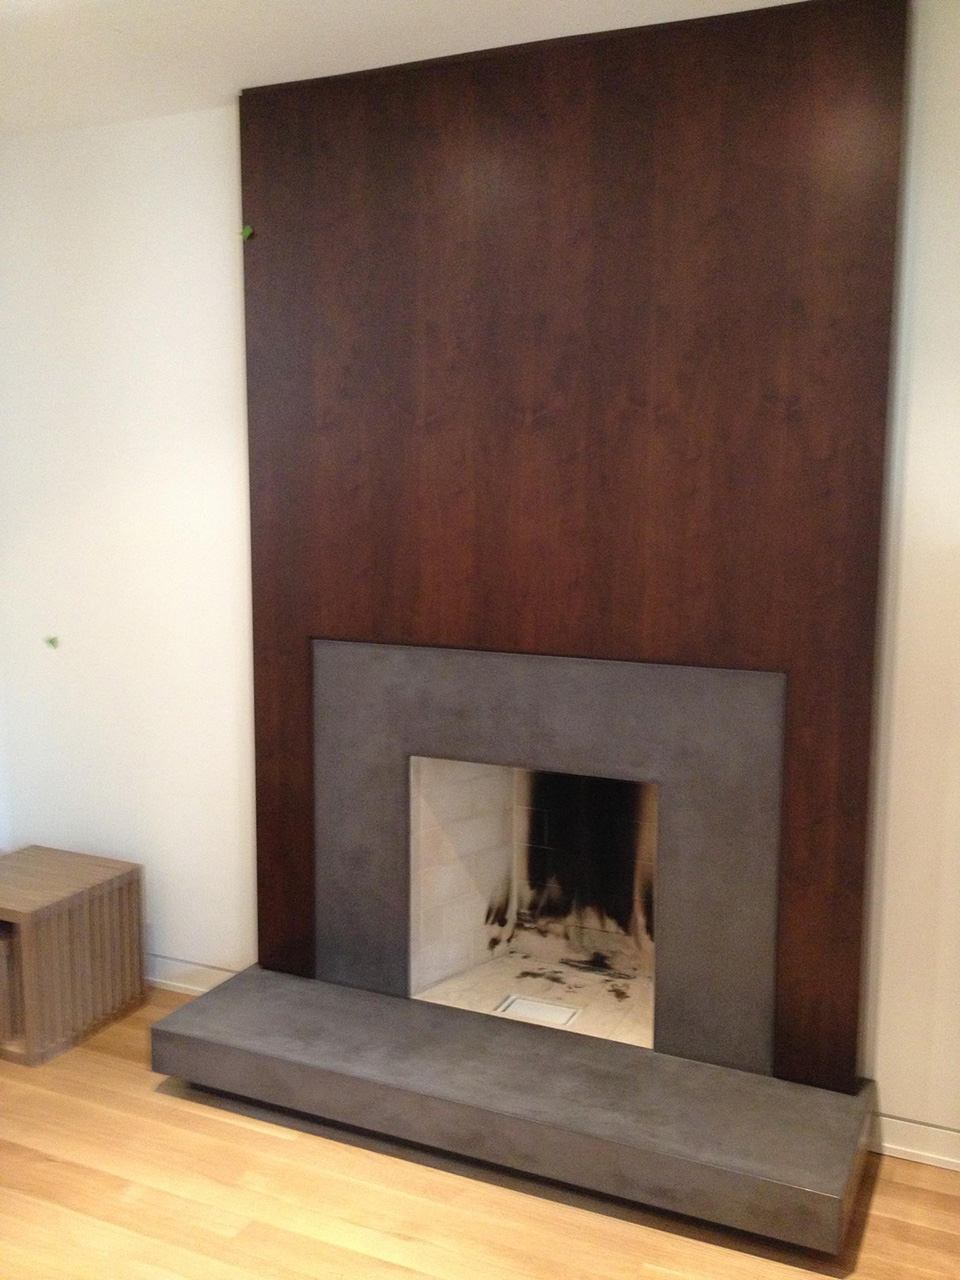 Another residential fireplace installation